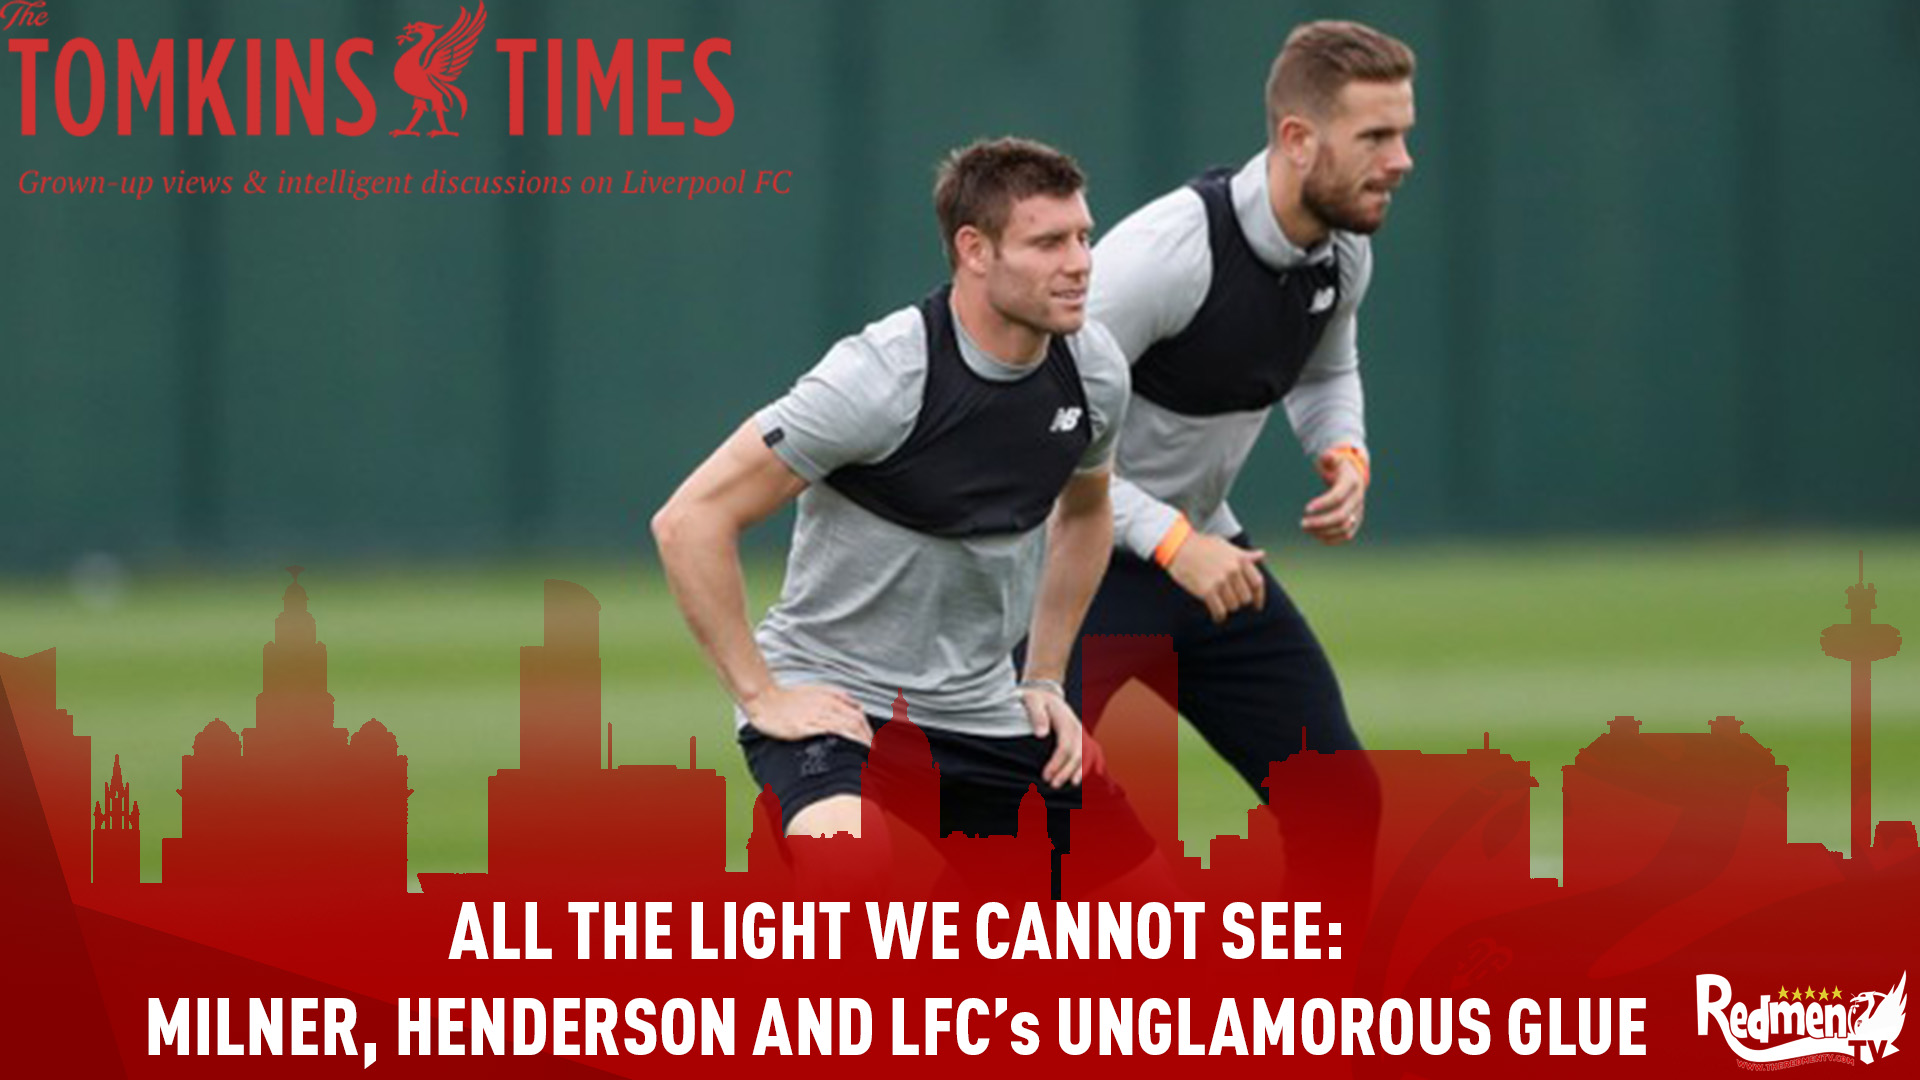 All the Light We Cannot See: Milner, Henderson and LFC's Unglamorous Glue